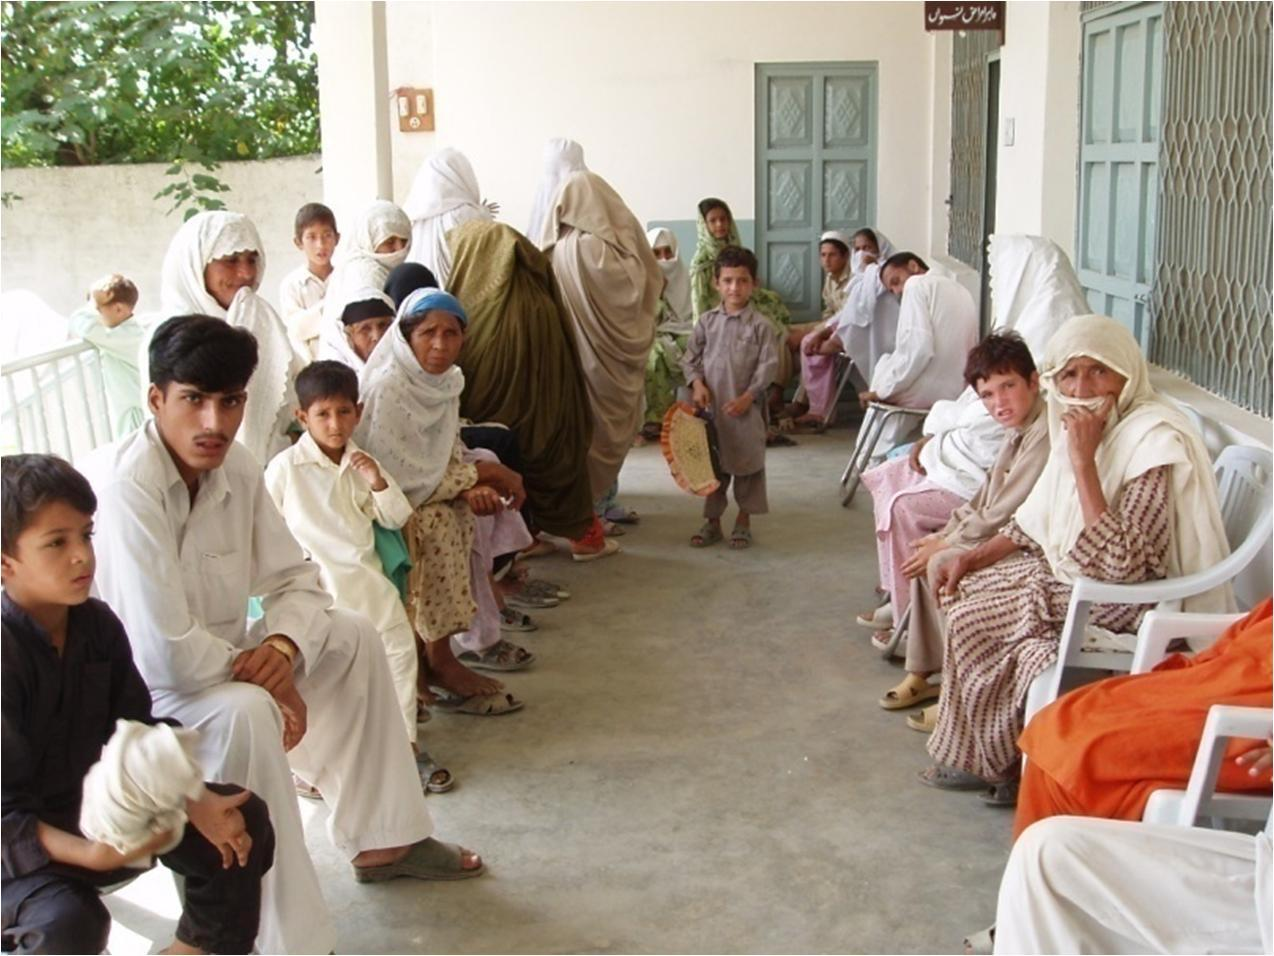 Public-private partnership brings specialised medical services to FATA